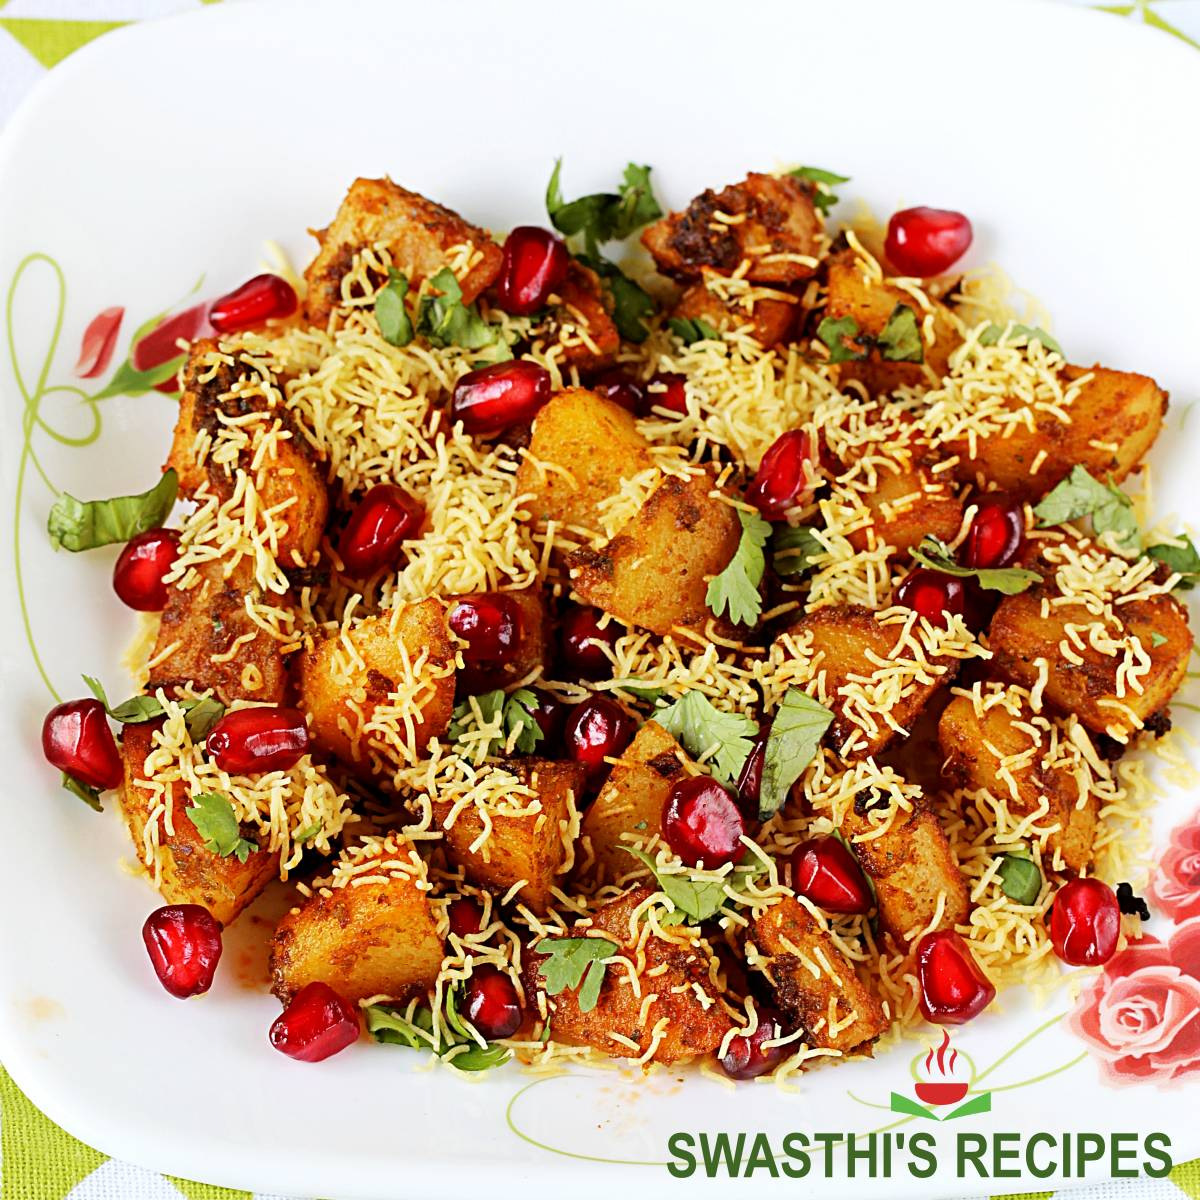 aloo chaat made with pan fried potatoes, ground spices and sev